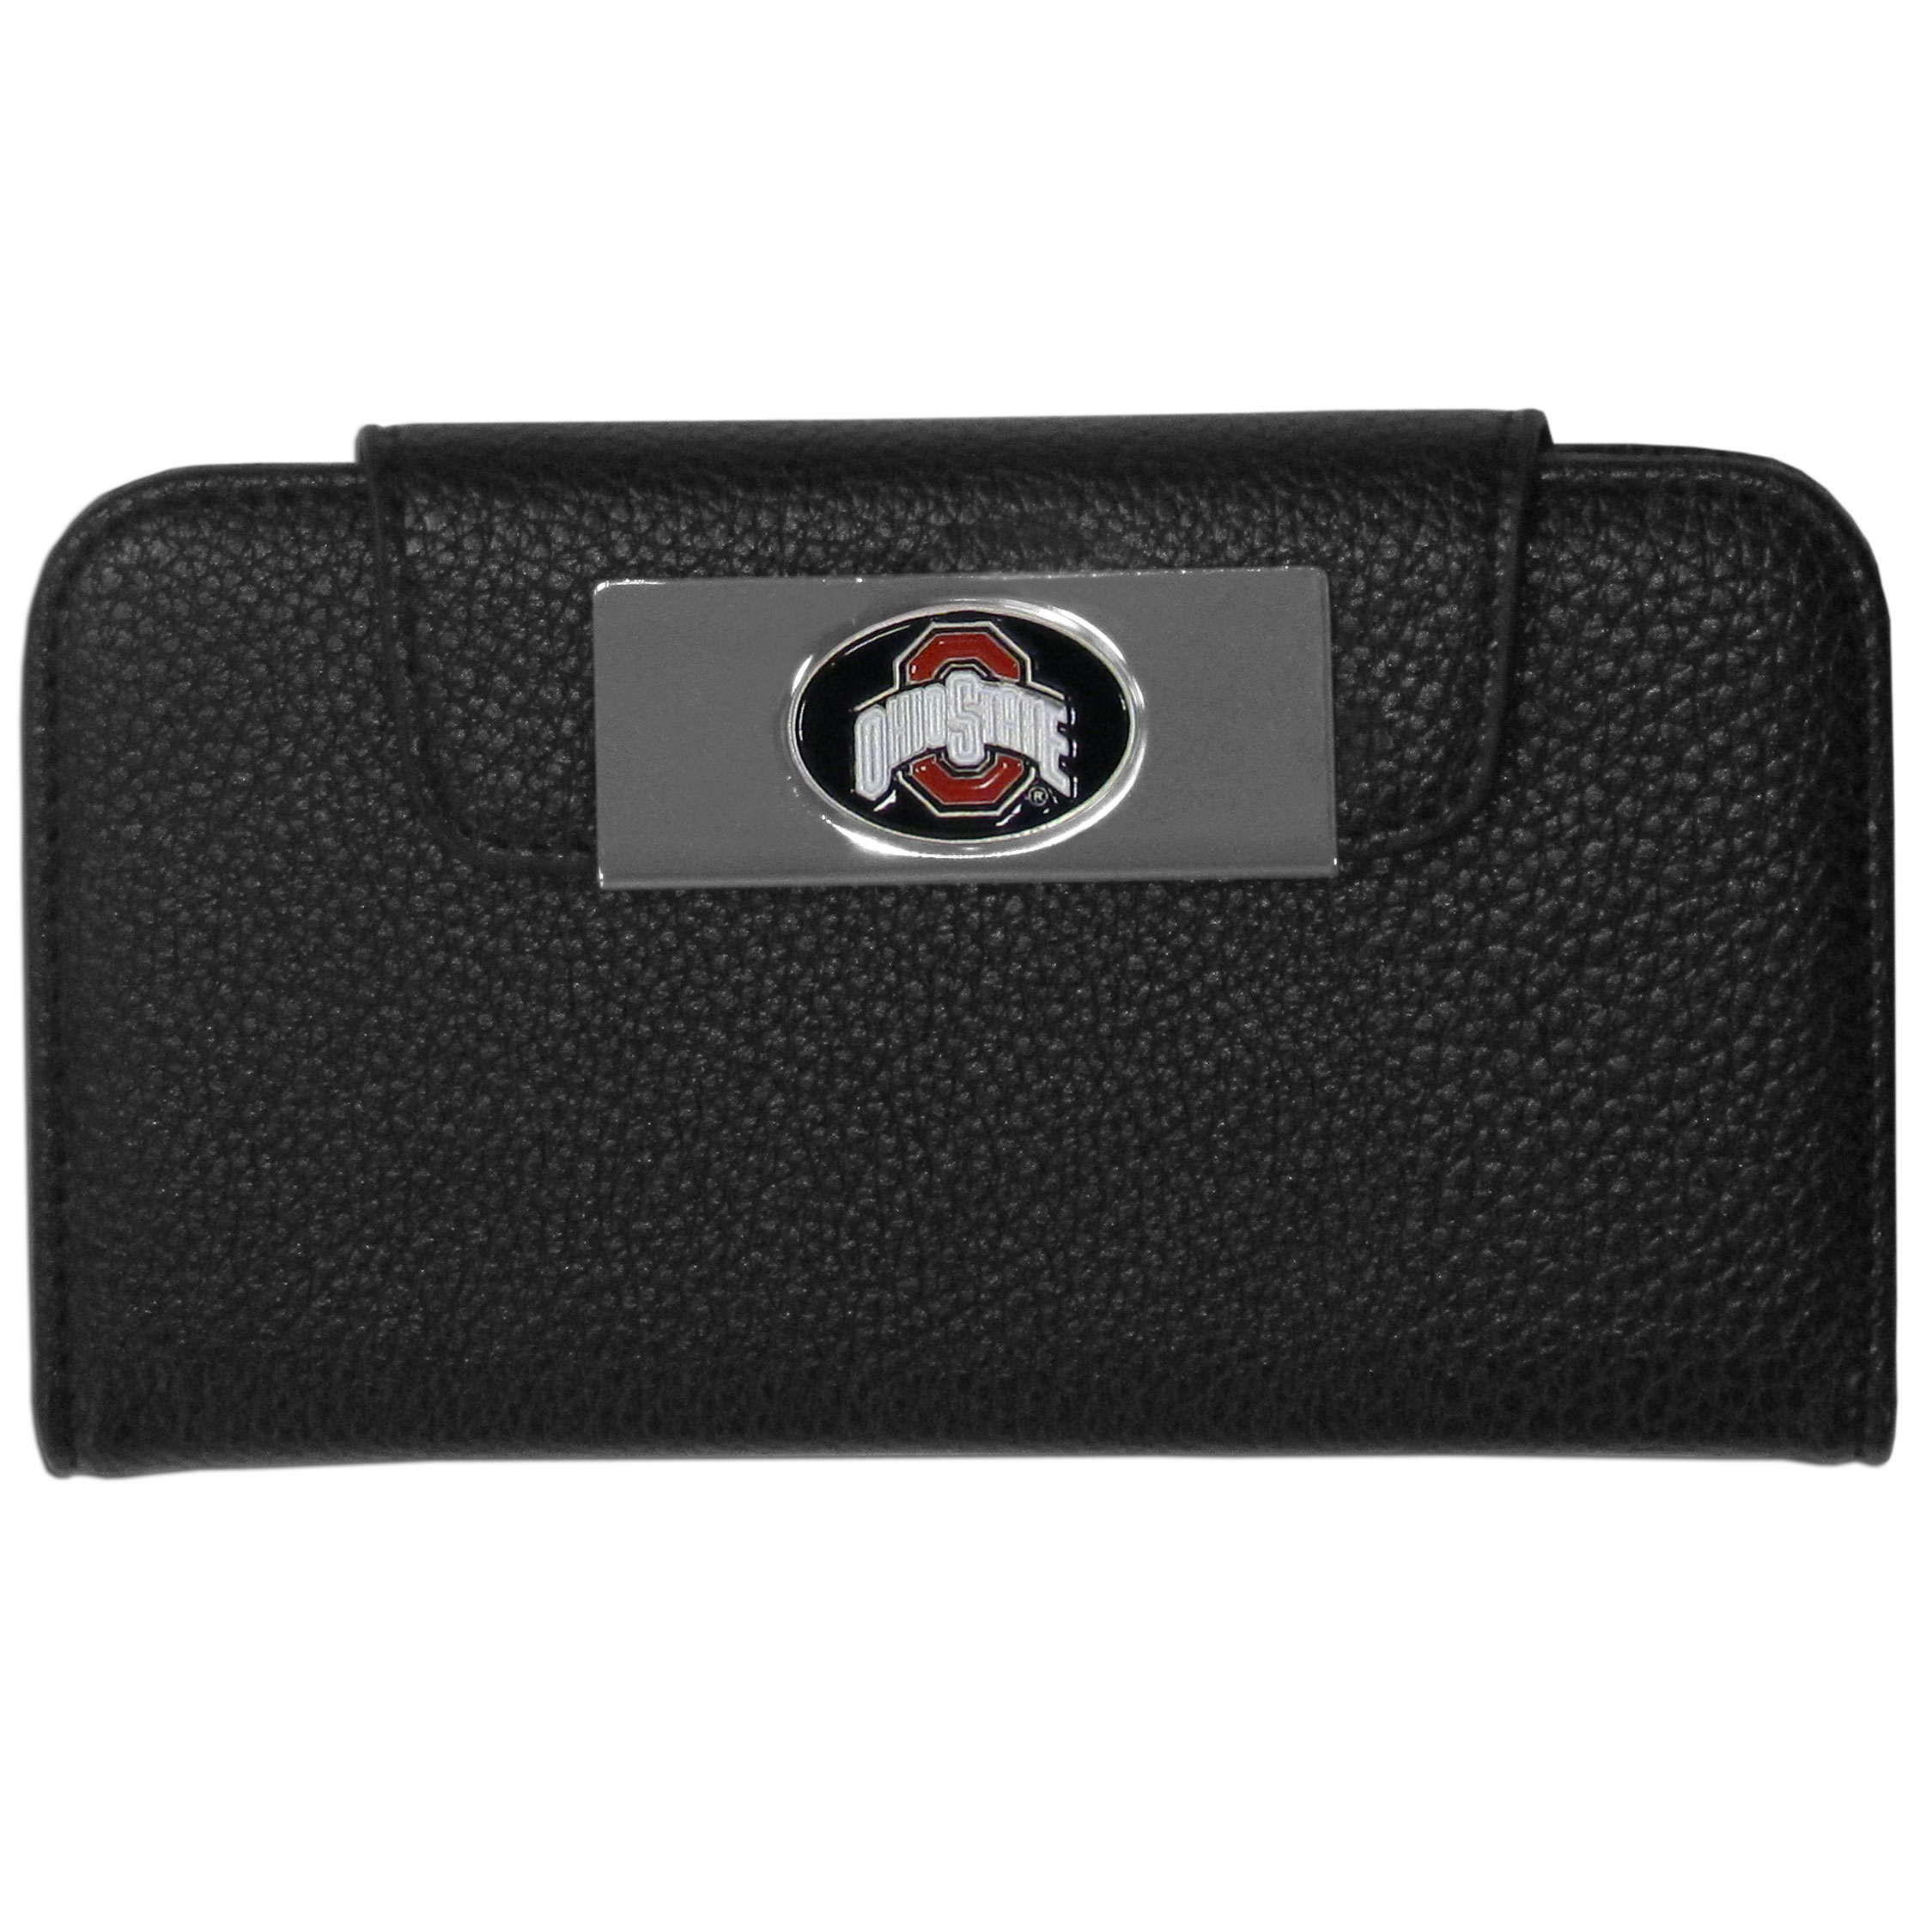 Ohio St. Buckeyes iPhone 5/5S Wallet Case - This new & wildly popular case is ideal for those who like to travel light! The stylish case has an inner hard shell that securely holds your phone while allowing complete access to the phone's functionality. The flip cover has slots for credit cards, business cards and identification. The magnetic flip cover has a metal Ohio St. Buckeyes emblem on a high polish chrome backing. Fits the iPhone 5/5S